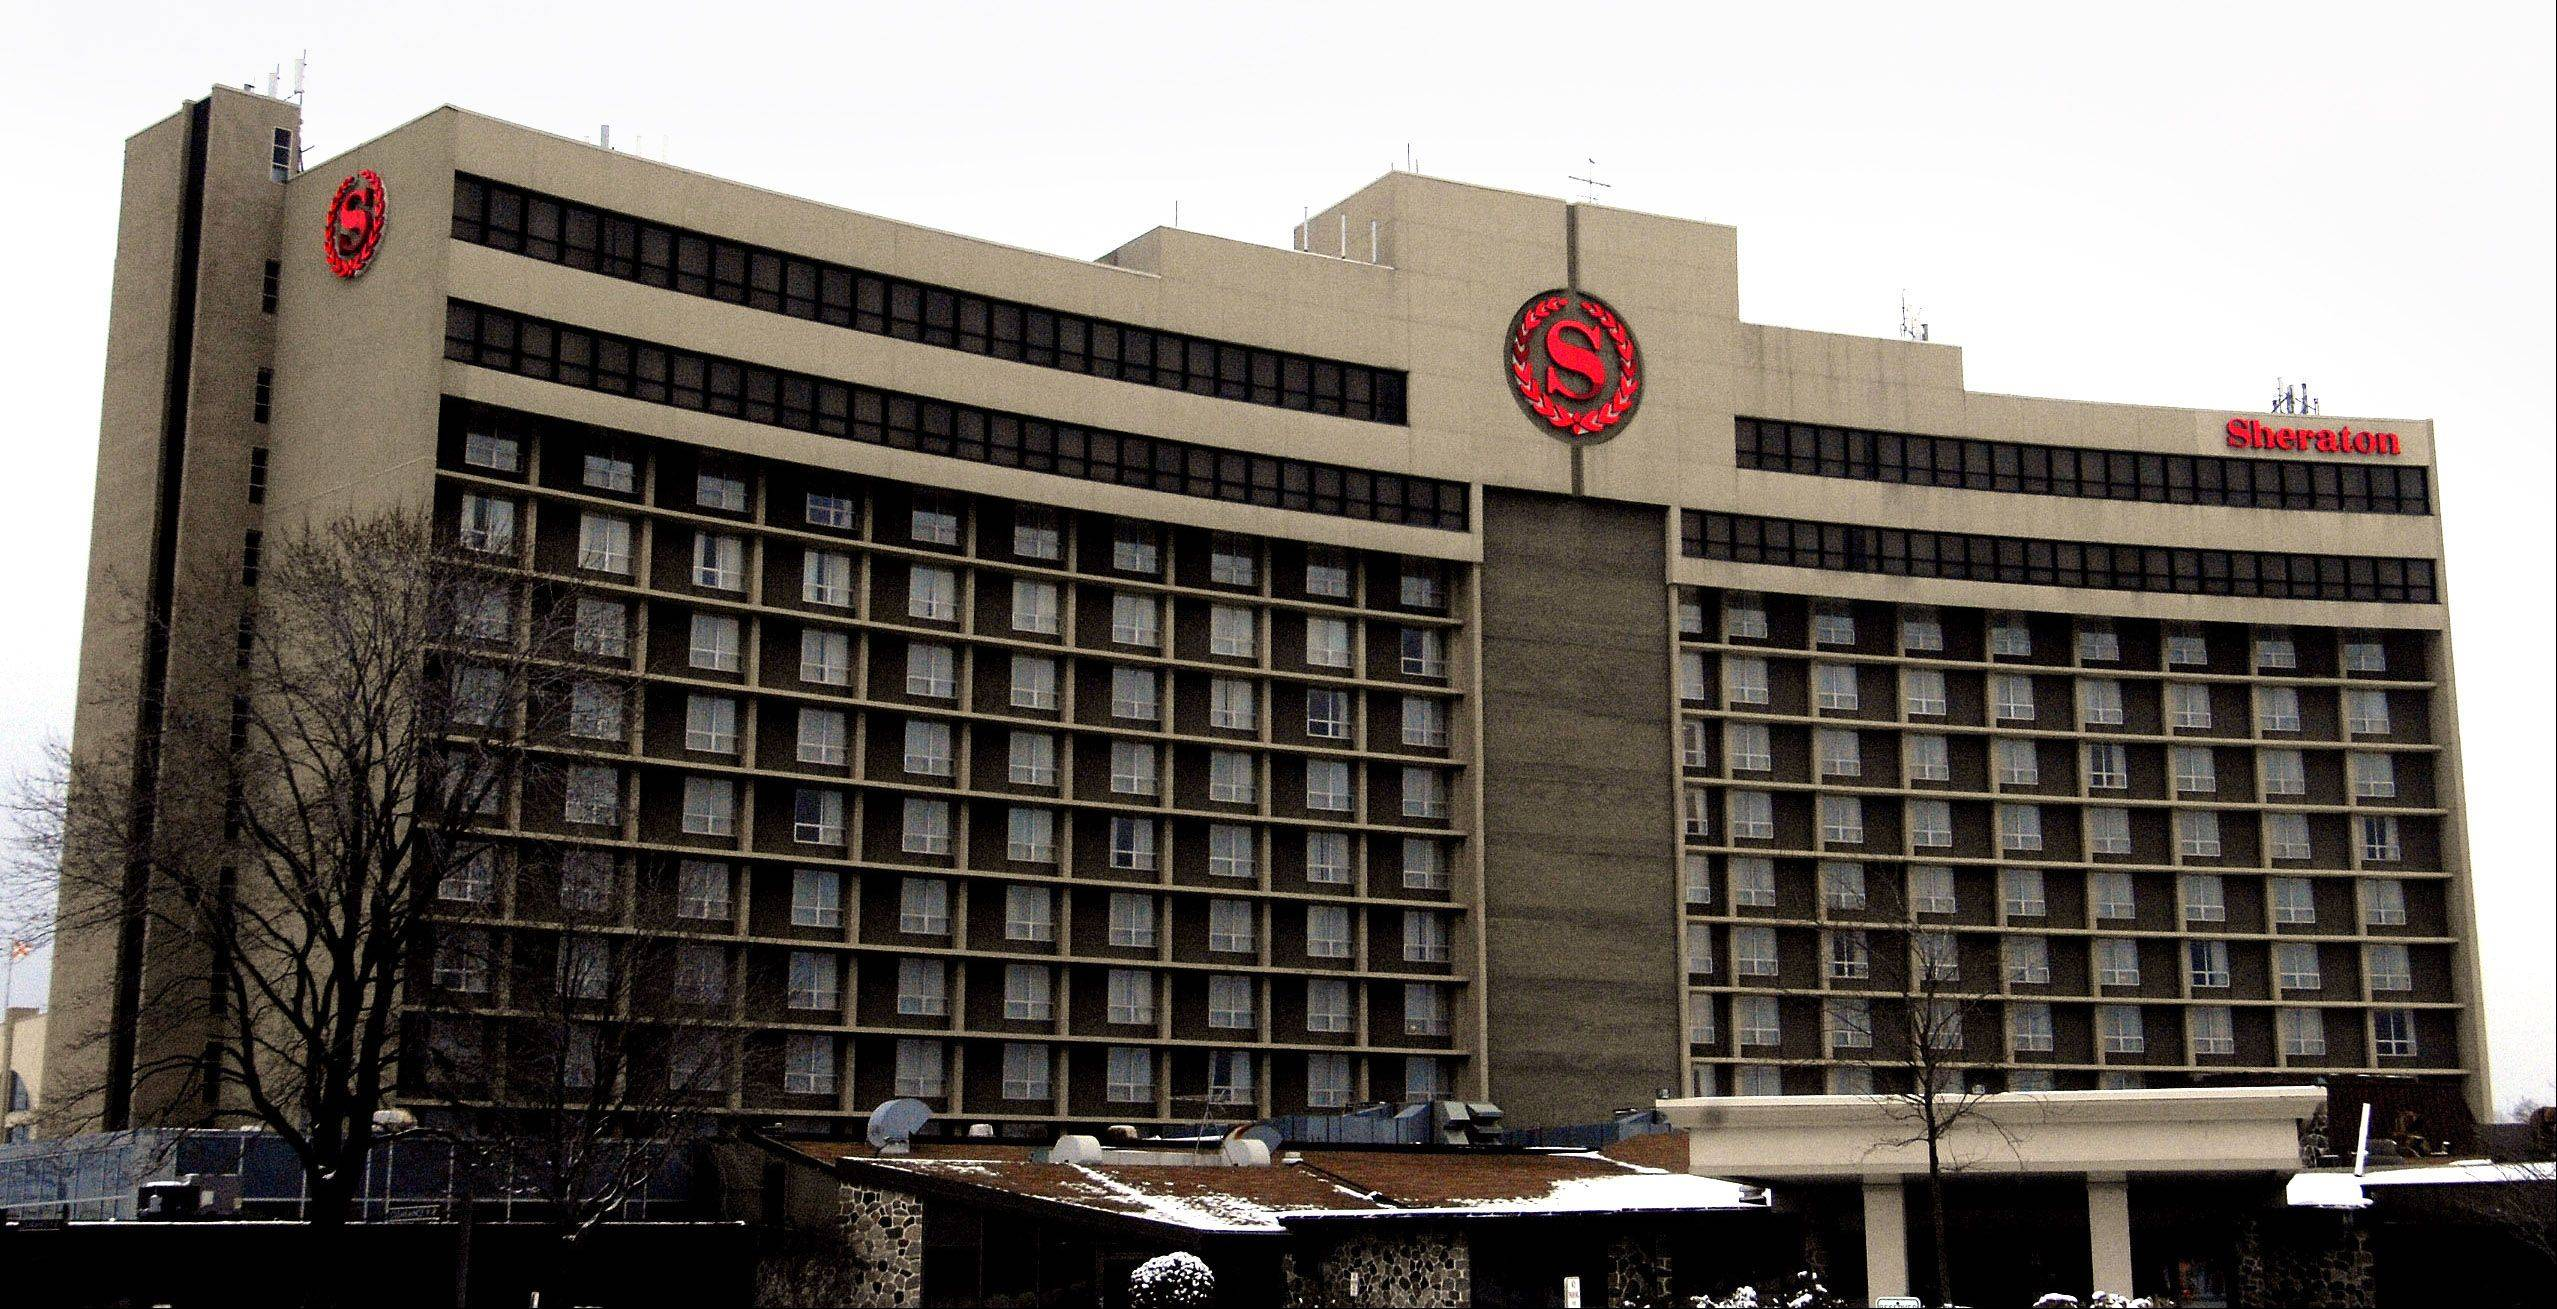 The Sheraton Chicago Northwest when it closed in December 2009.